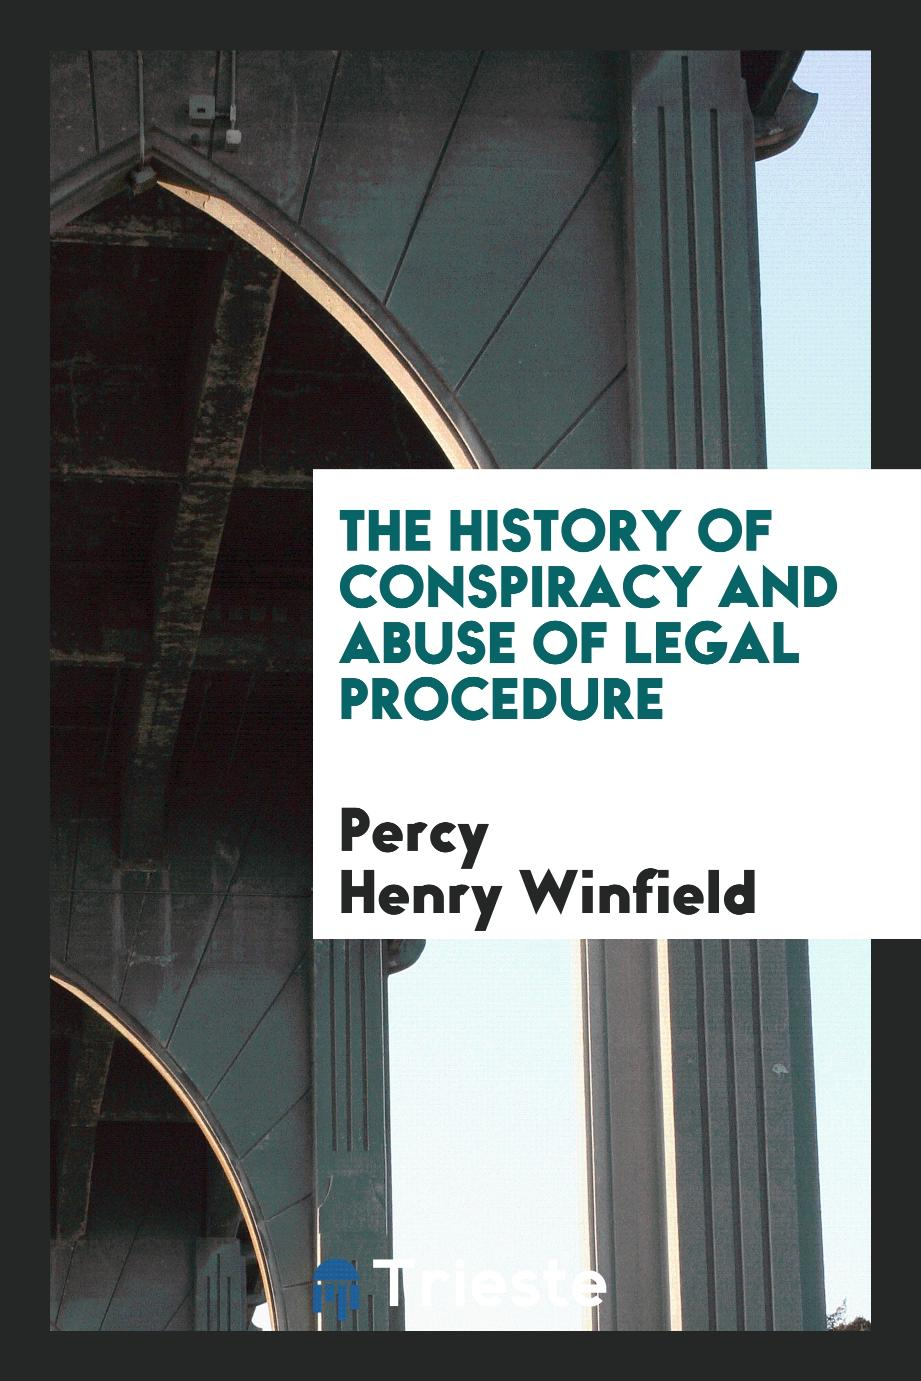 The History of Conspiracy and Abuse of Legal Procedure